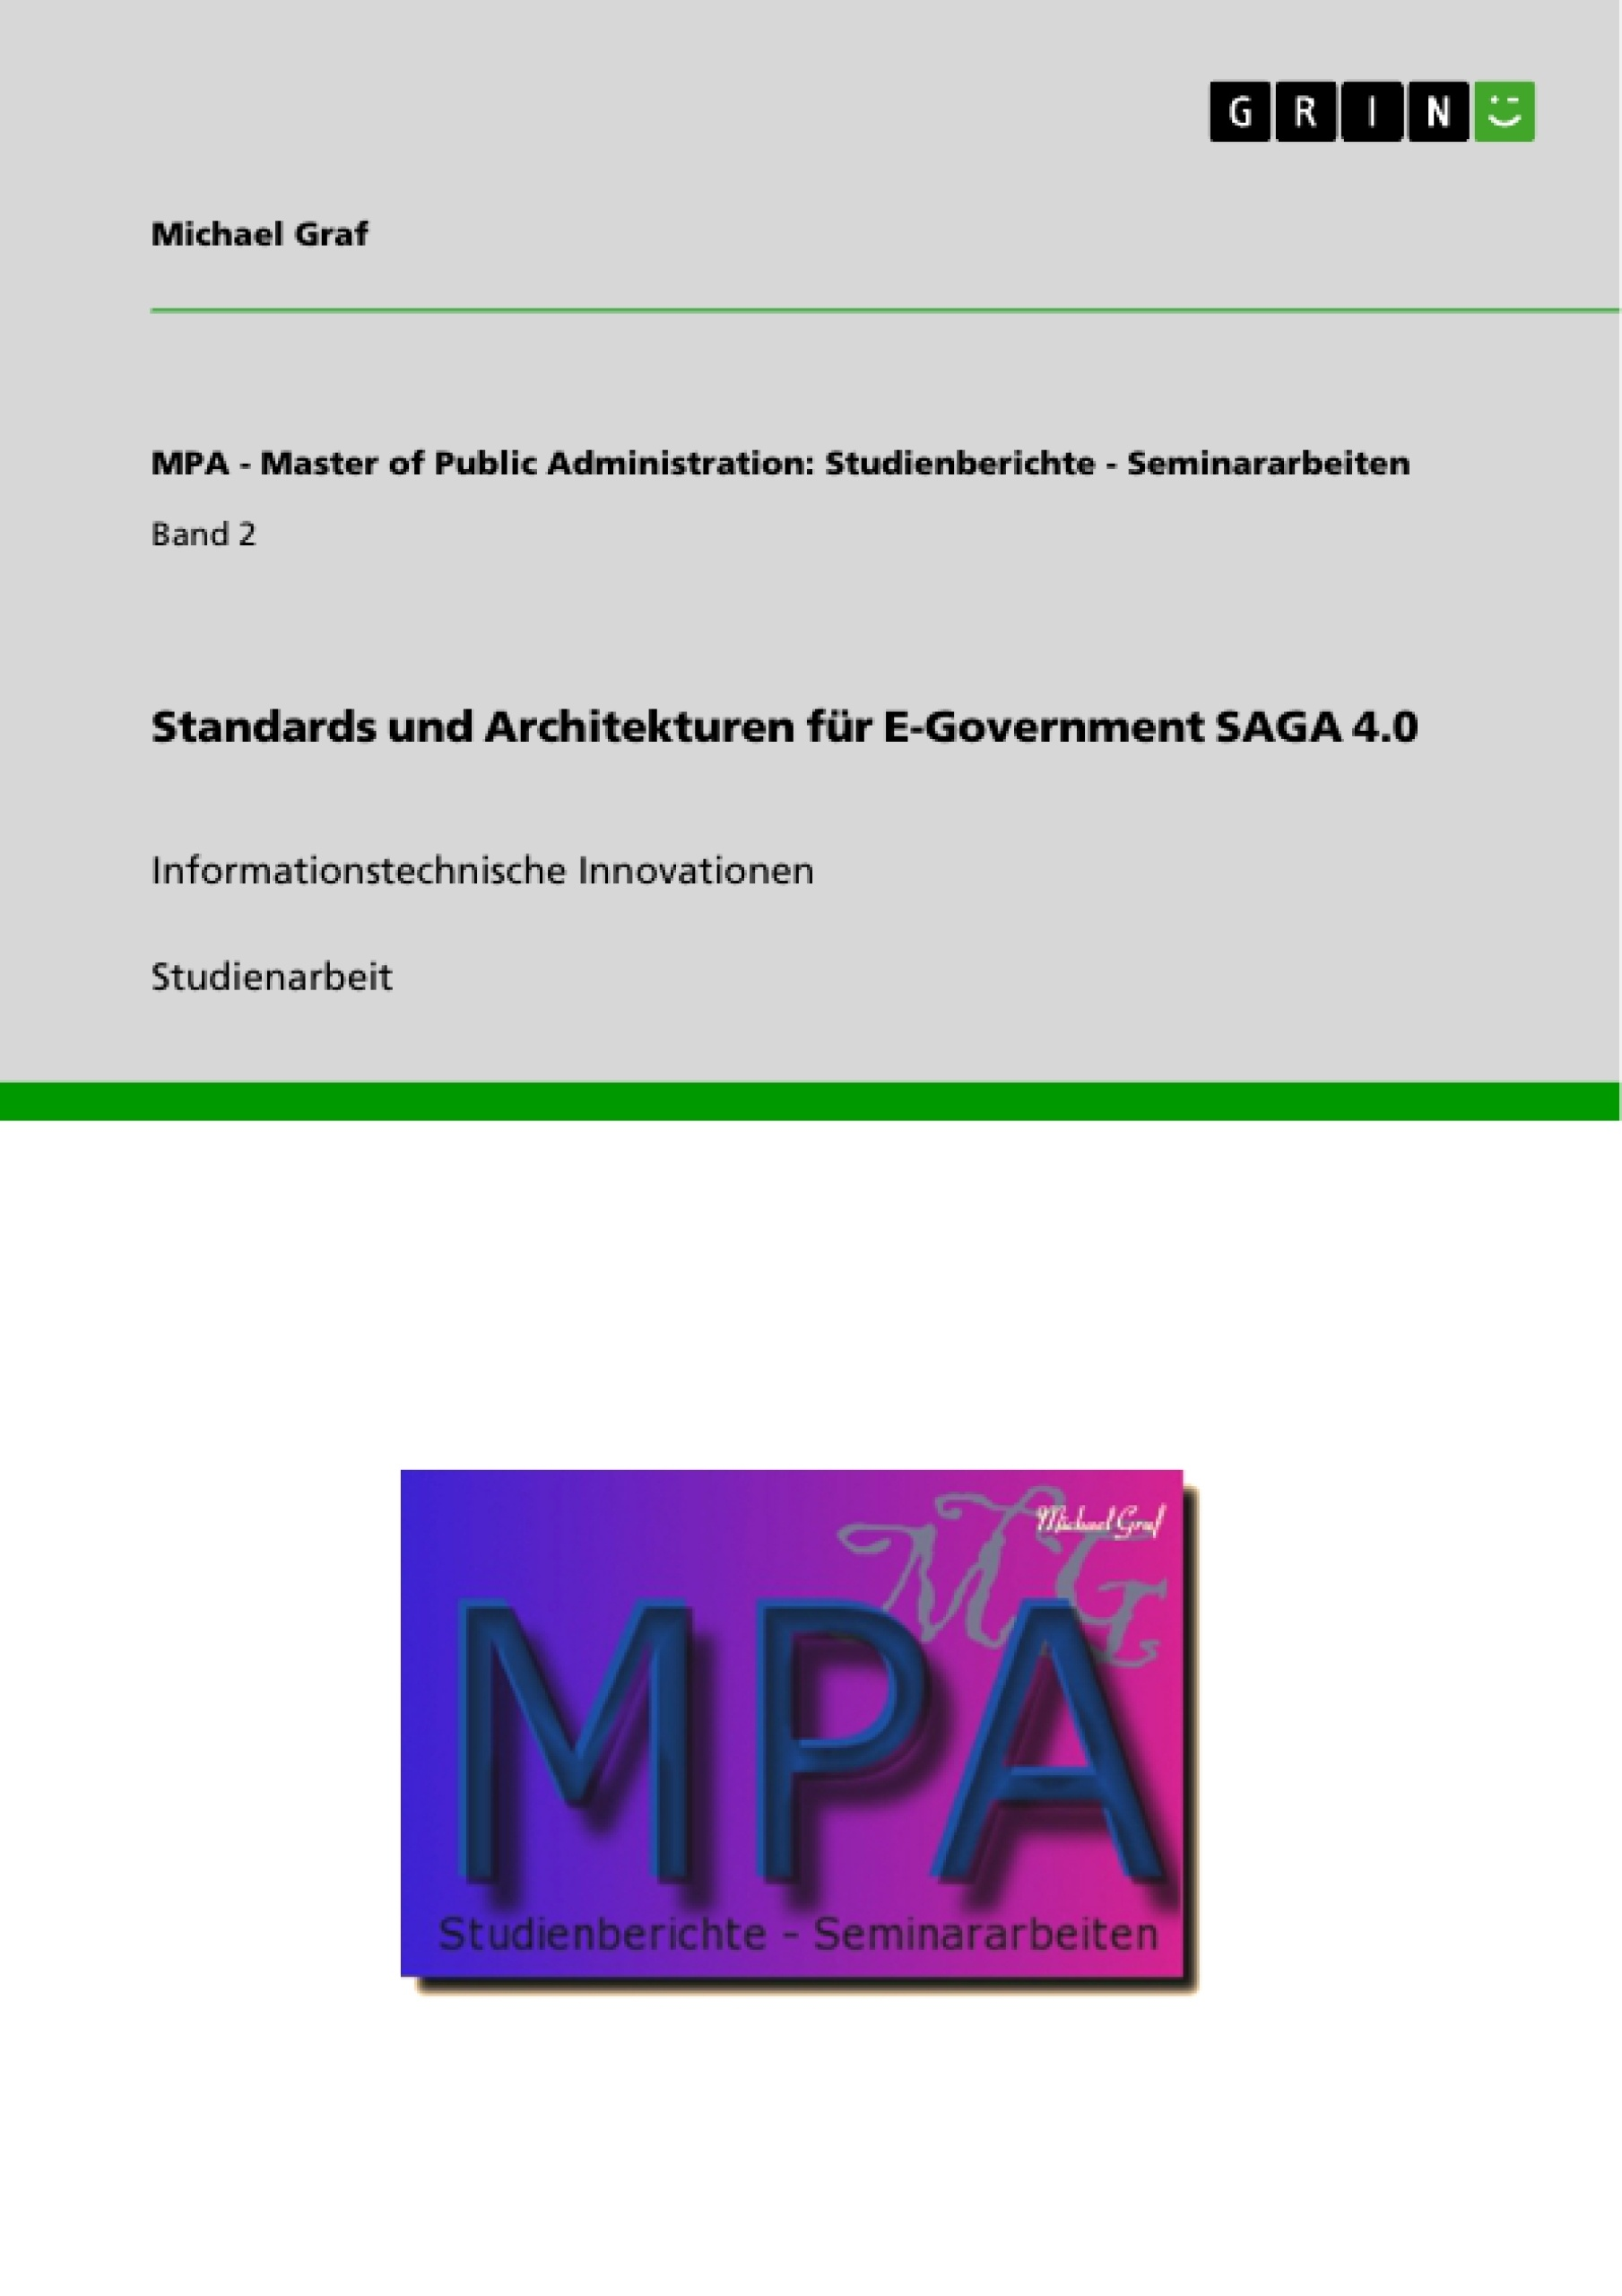 Titel: Standards und Architekturen für E-Government SAGA 4.0